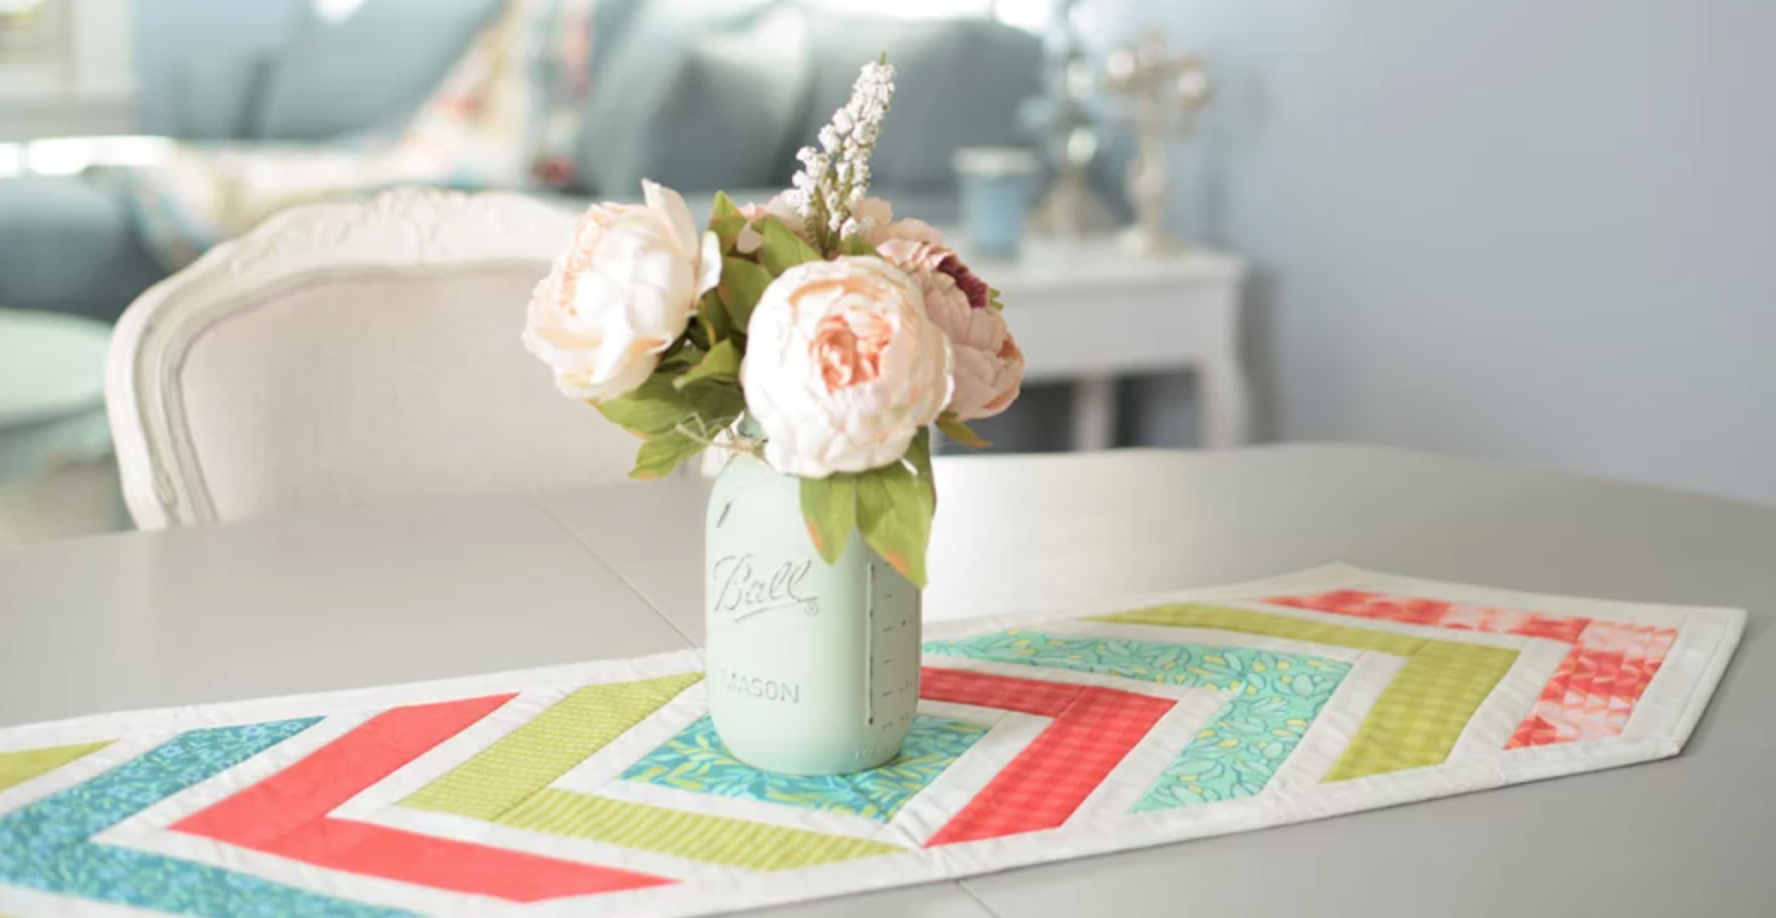 quilted table runner with bouquet centerpiece